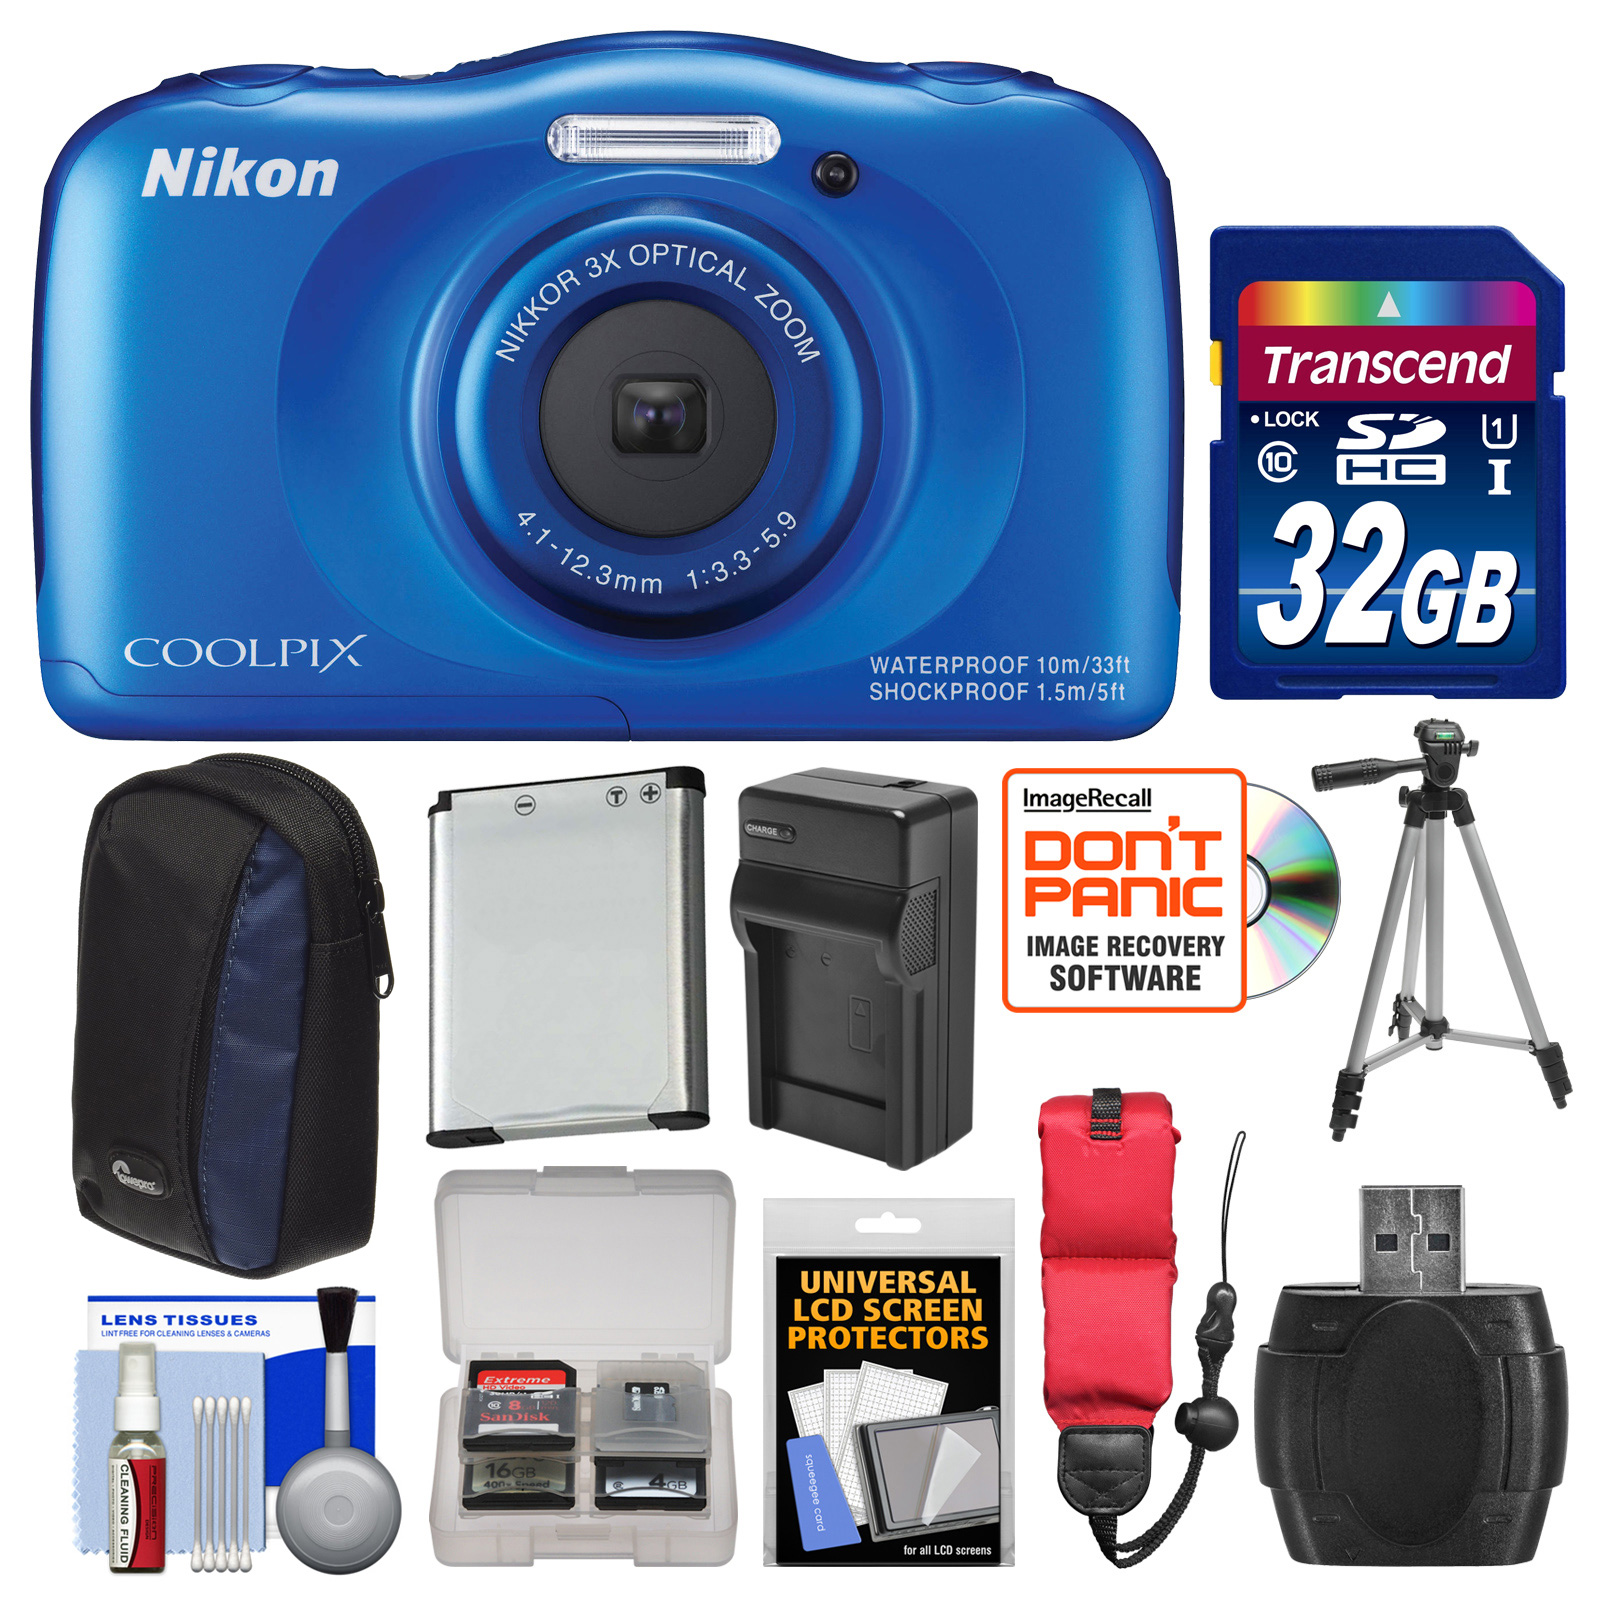 Nikon Coolpix S33 Shock & Waterproof Digital Camera (Blue) with 32GB Card + Battery + Charger + Case + Floating Strap + Tripod + Kit